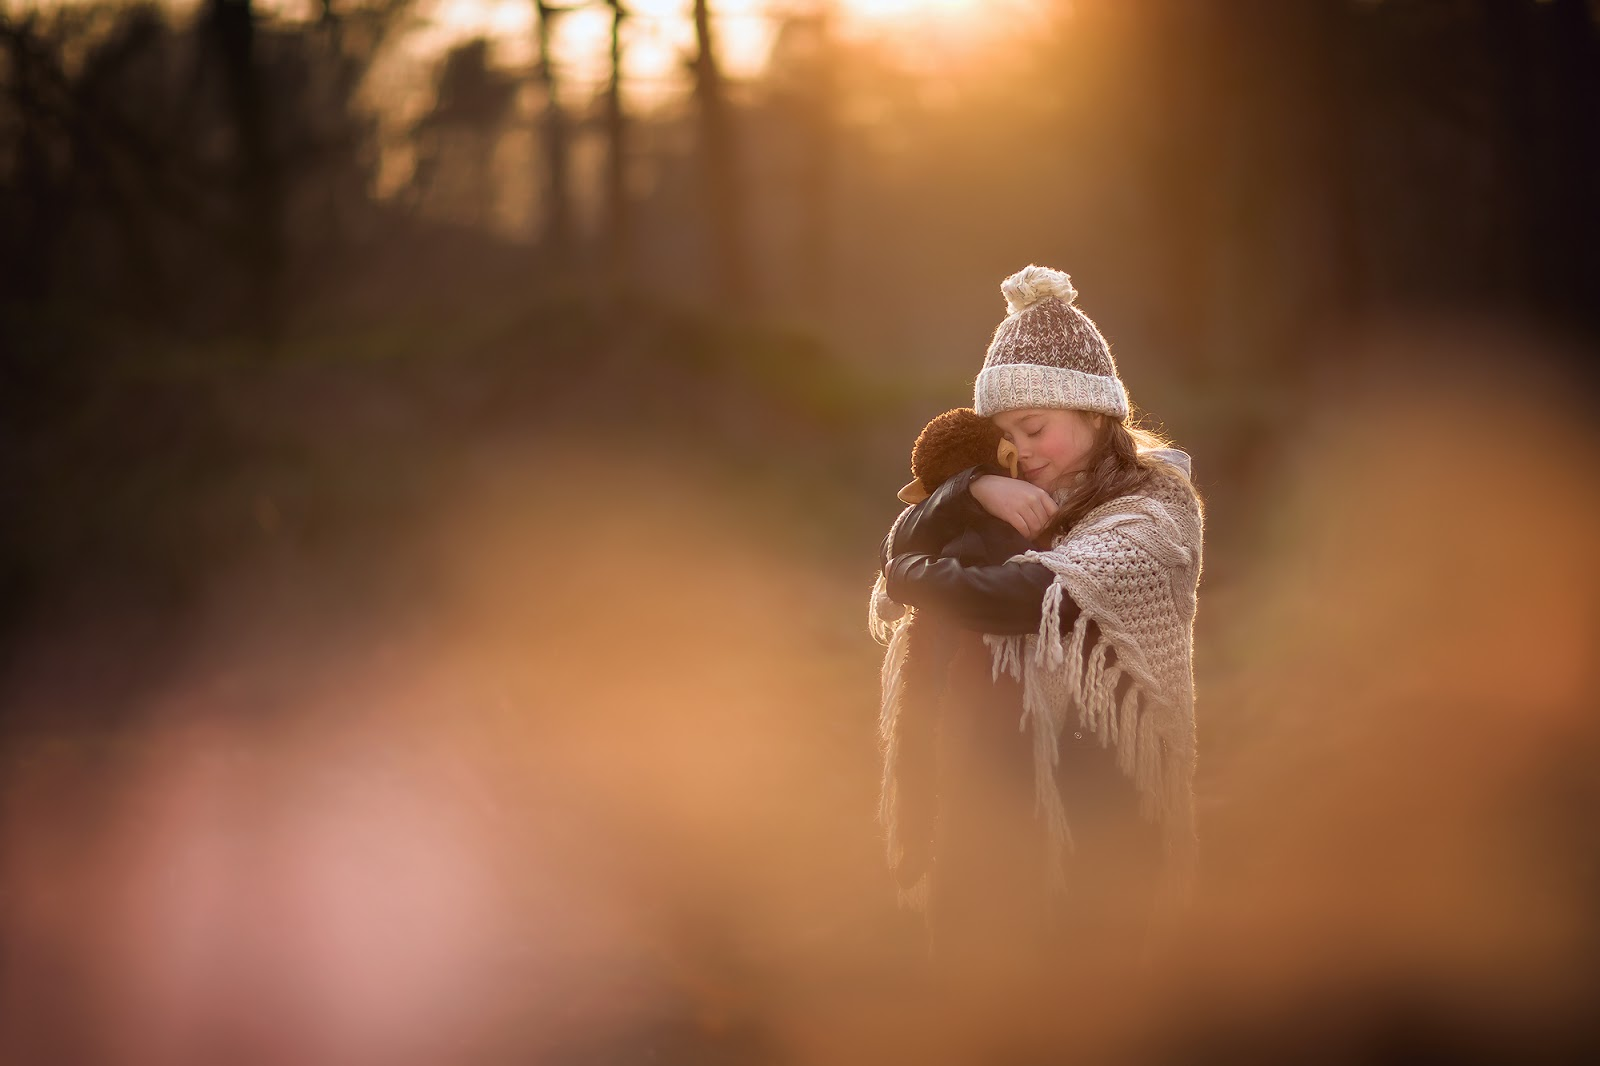 Canon color image of a little girl with a hat in winter and her stuffed animal monkey during sunset by Willie Kers